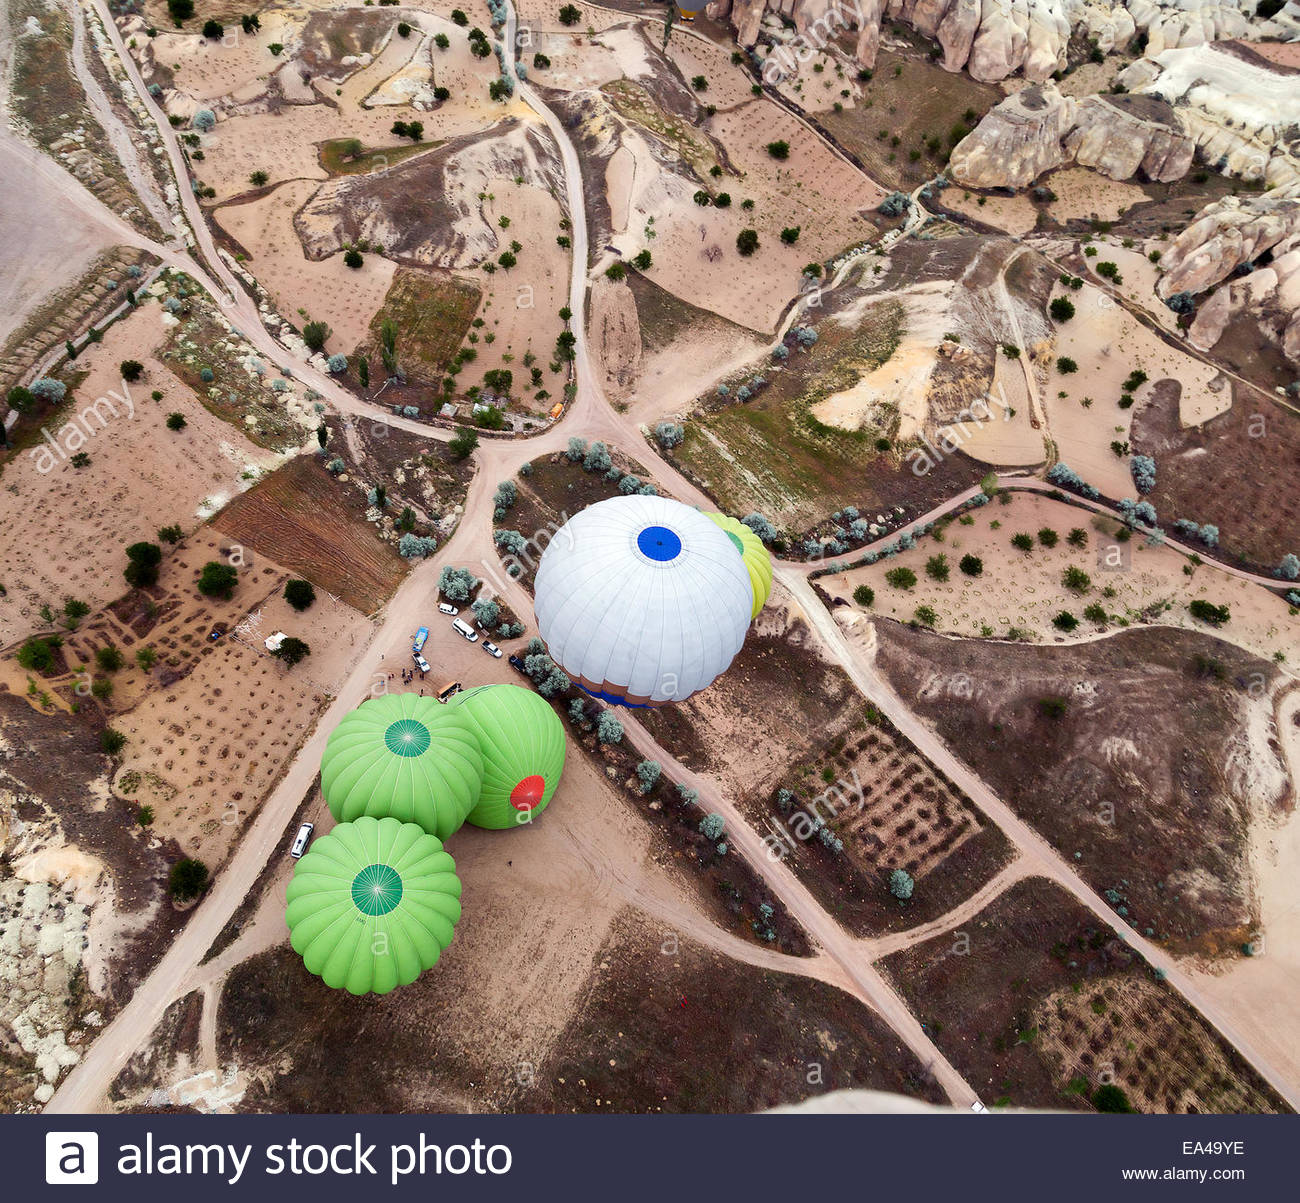 Colorful hot air balloons - Stock Image